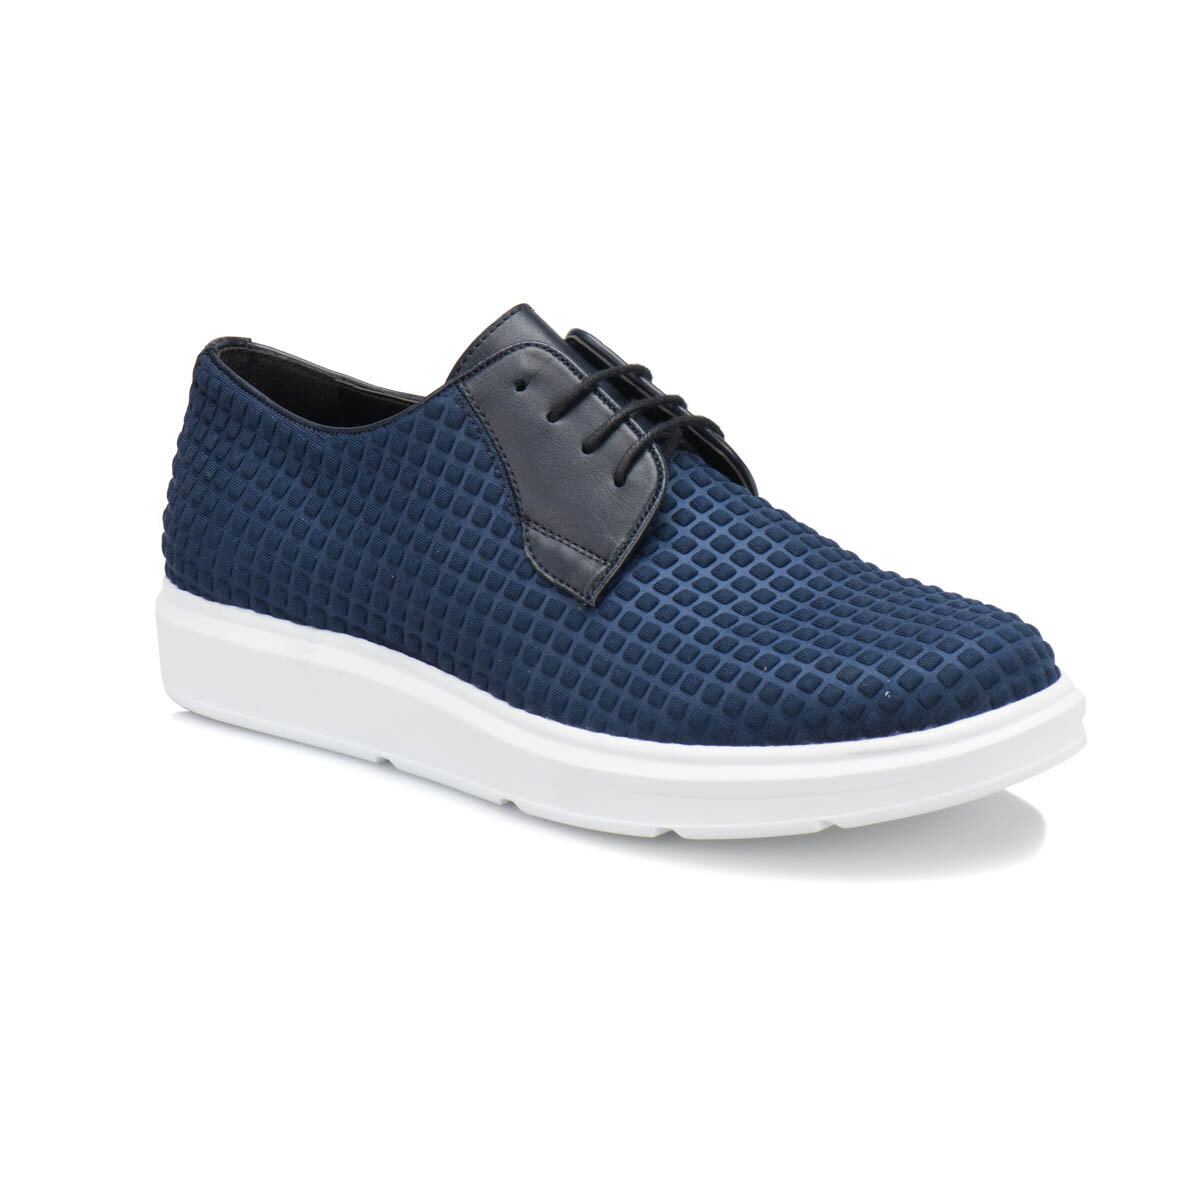 FLO 65300 M 6685 Navy Blue Men 'S Modern Shoes JJ-Stiller